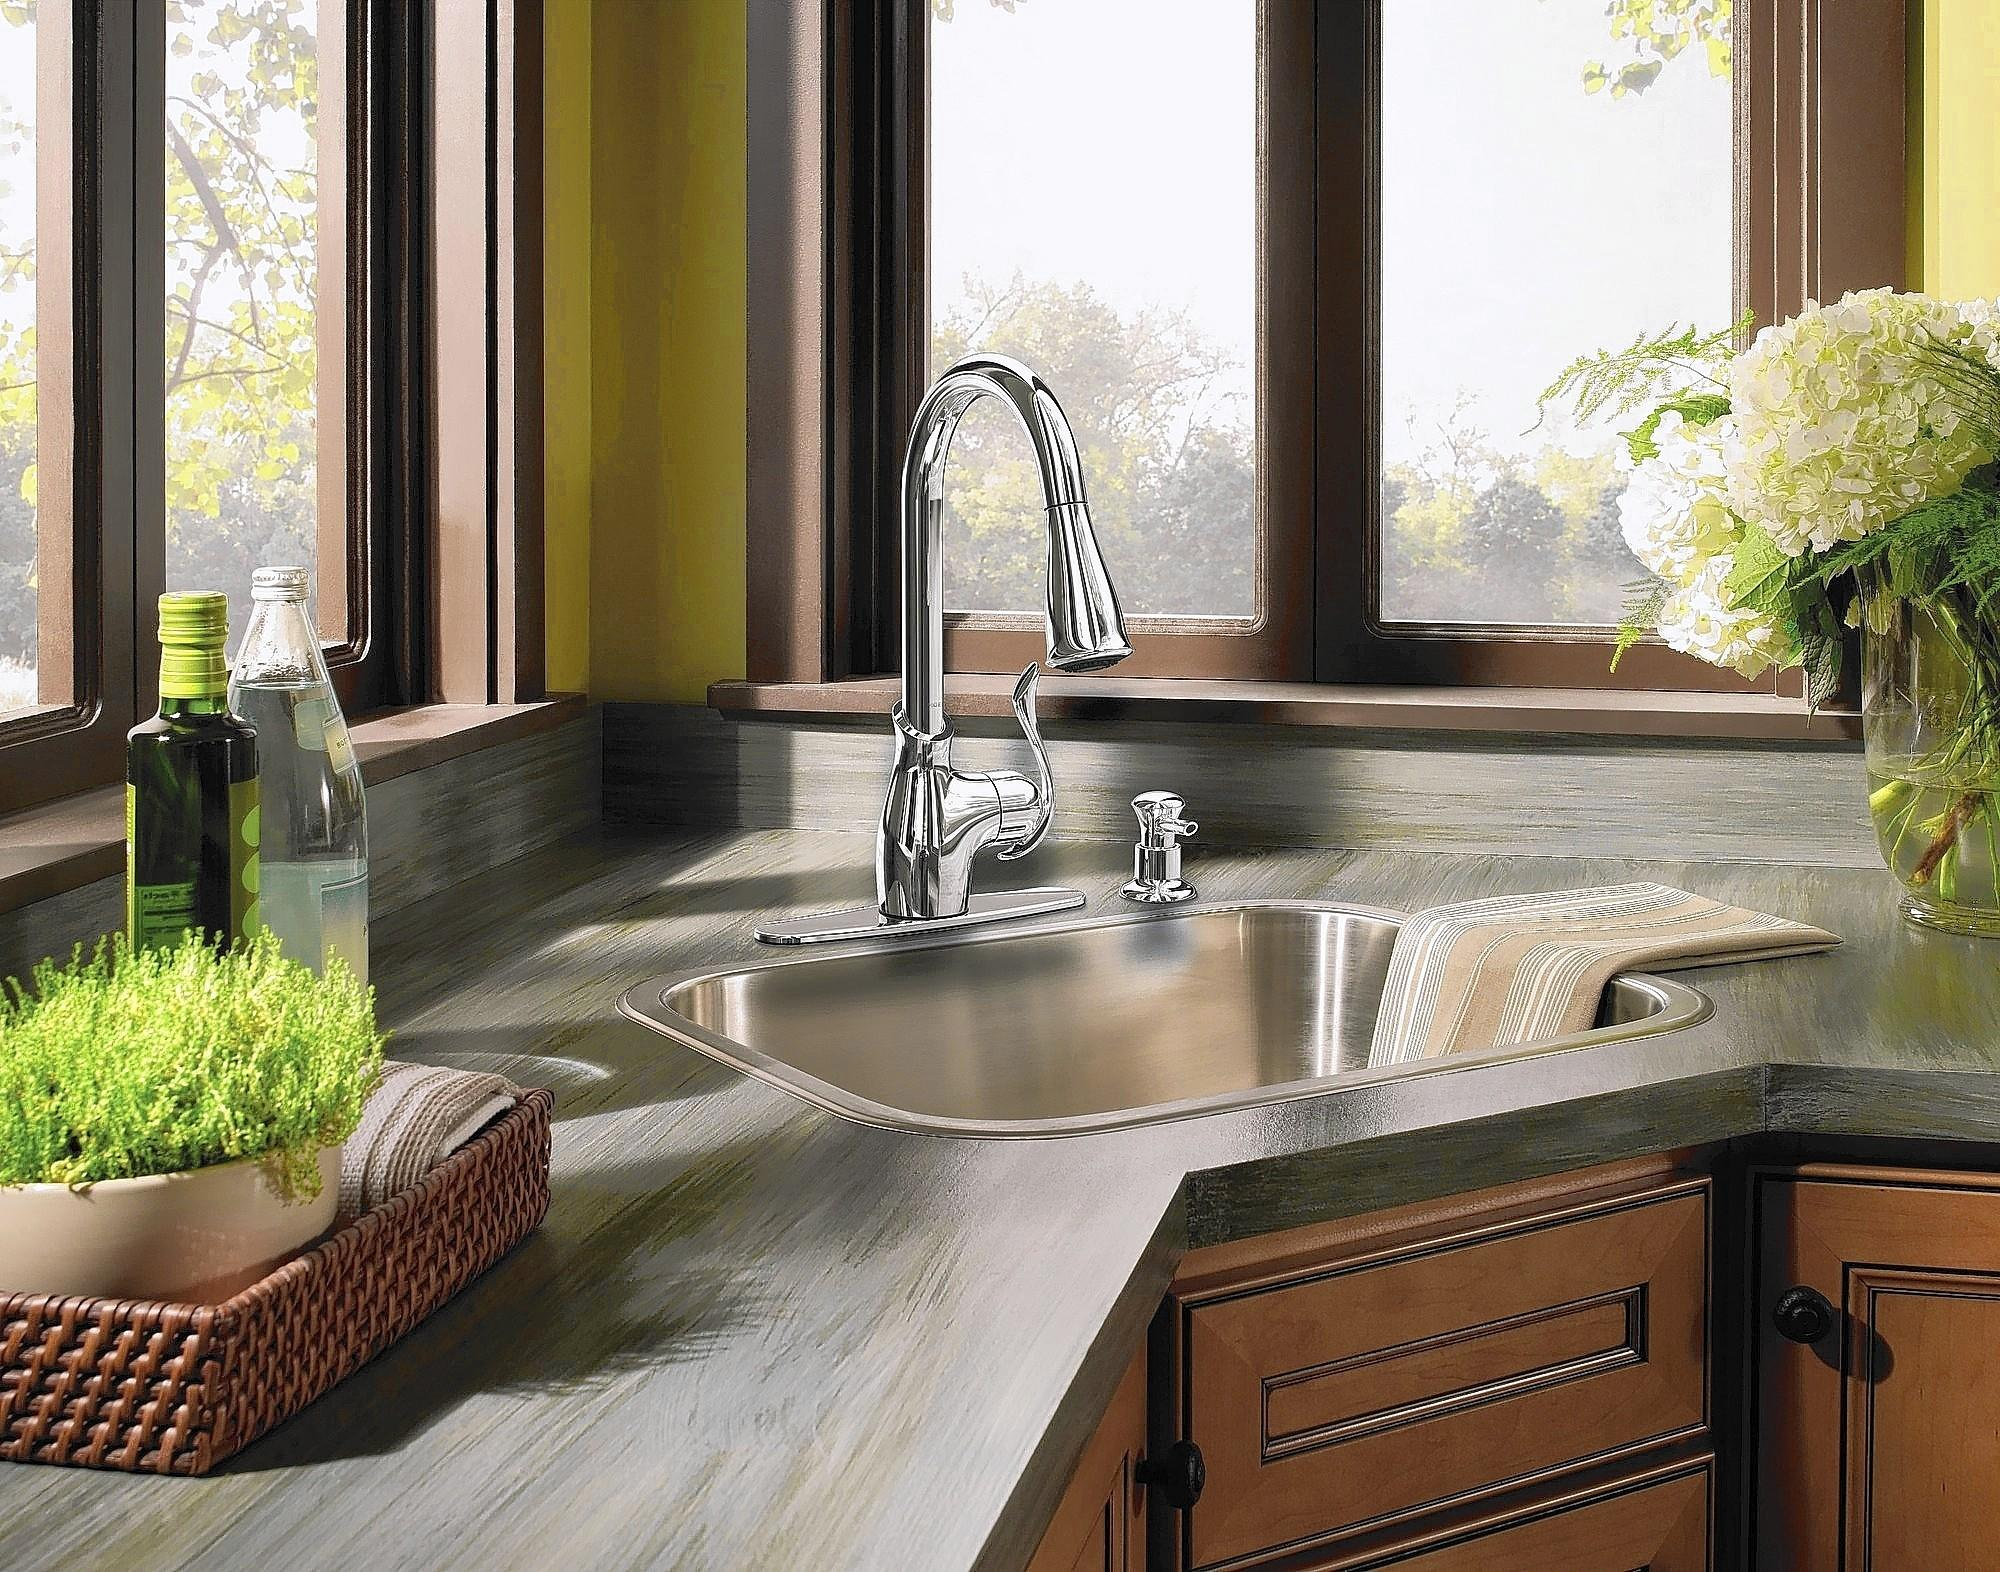 Stainless steel is often the best choice in sink materials if homeowners tend to be hard on sinks.